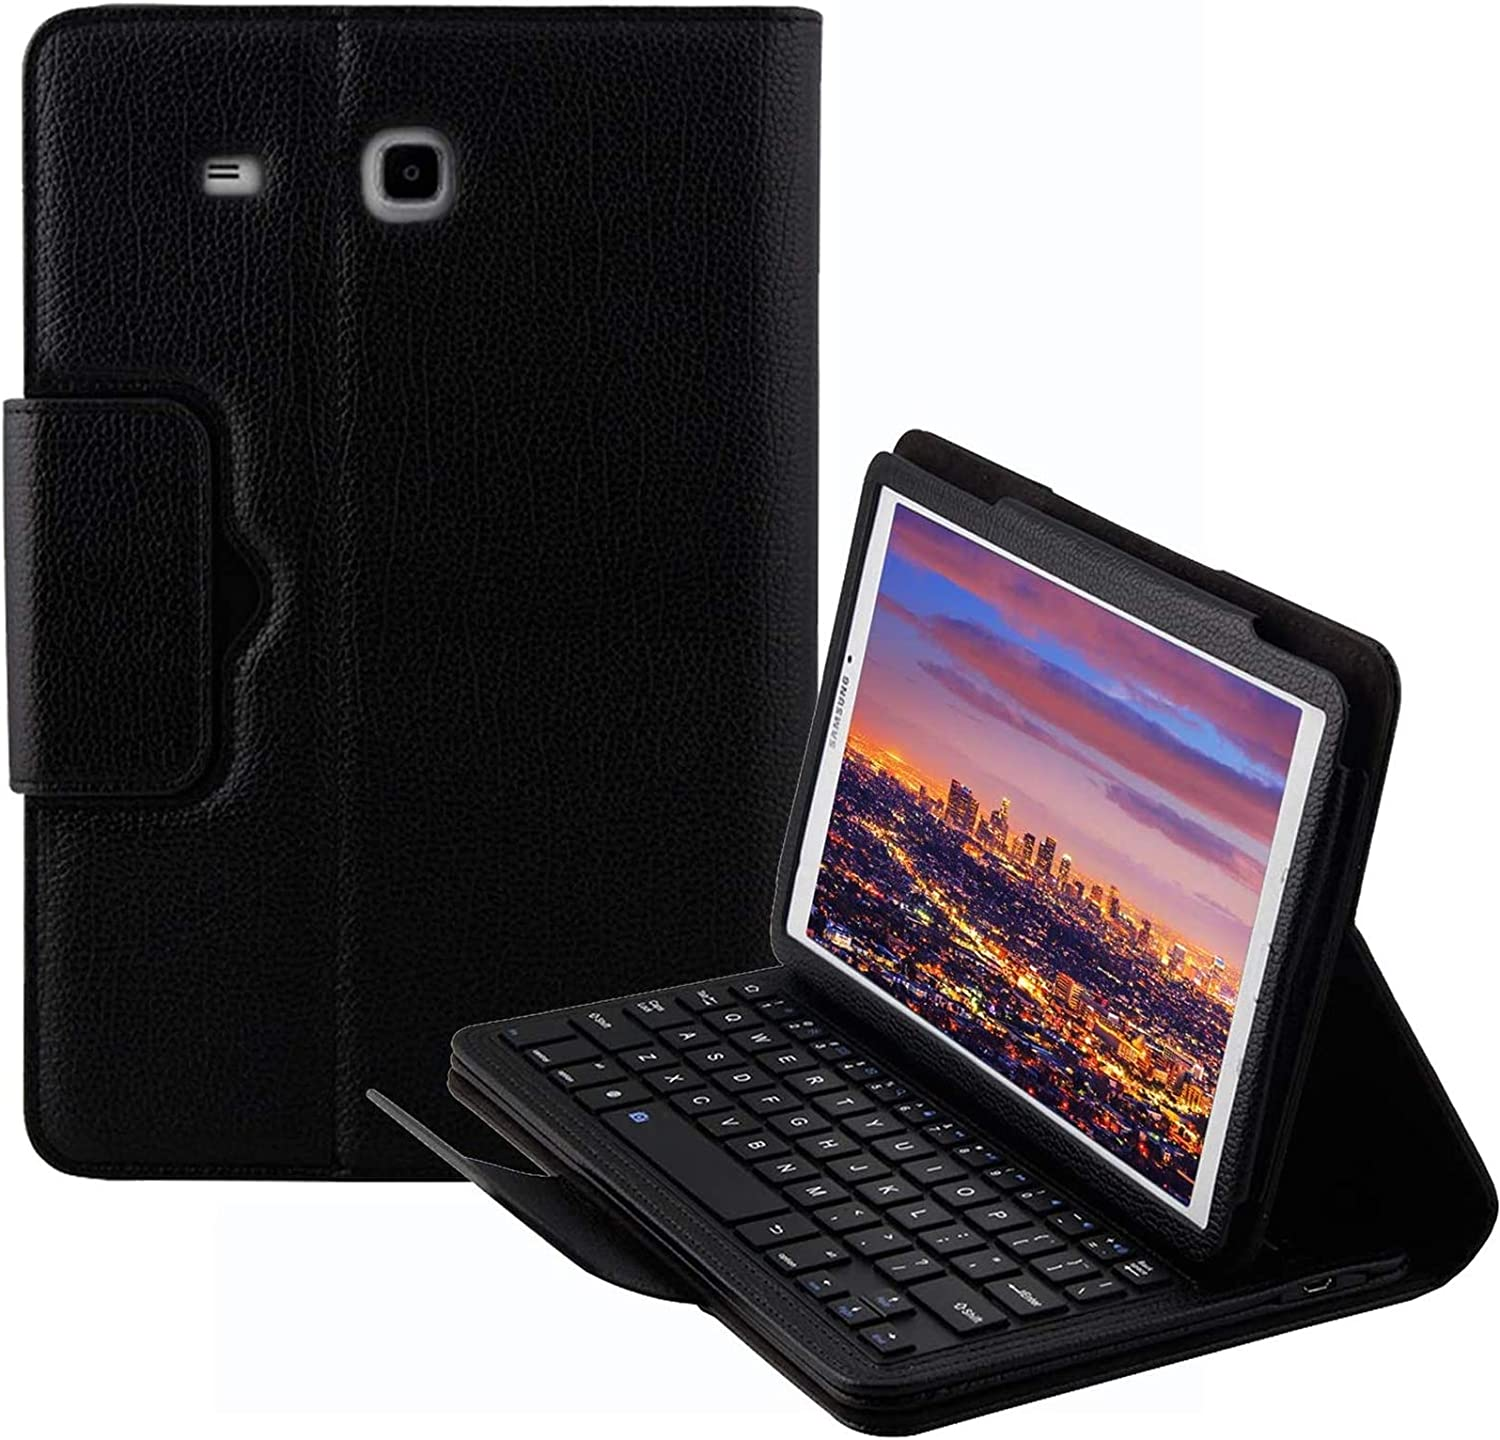 Binguowang Keyboard Case for Samsung Galaxy Tab E 9.6' - Folio PU Leather Stand Case Cover with Detachable Wireless Keyboard for Samsung Galaxy Tab E 9.6-Inch (Black)